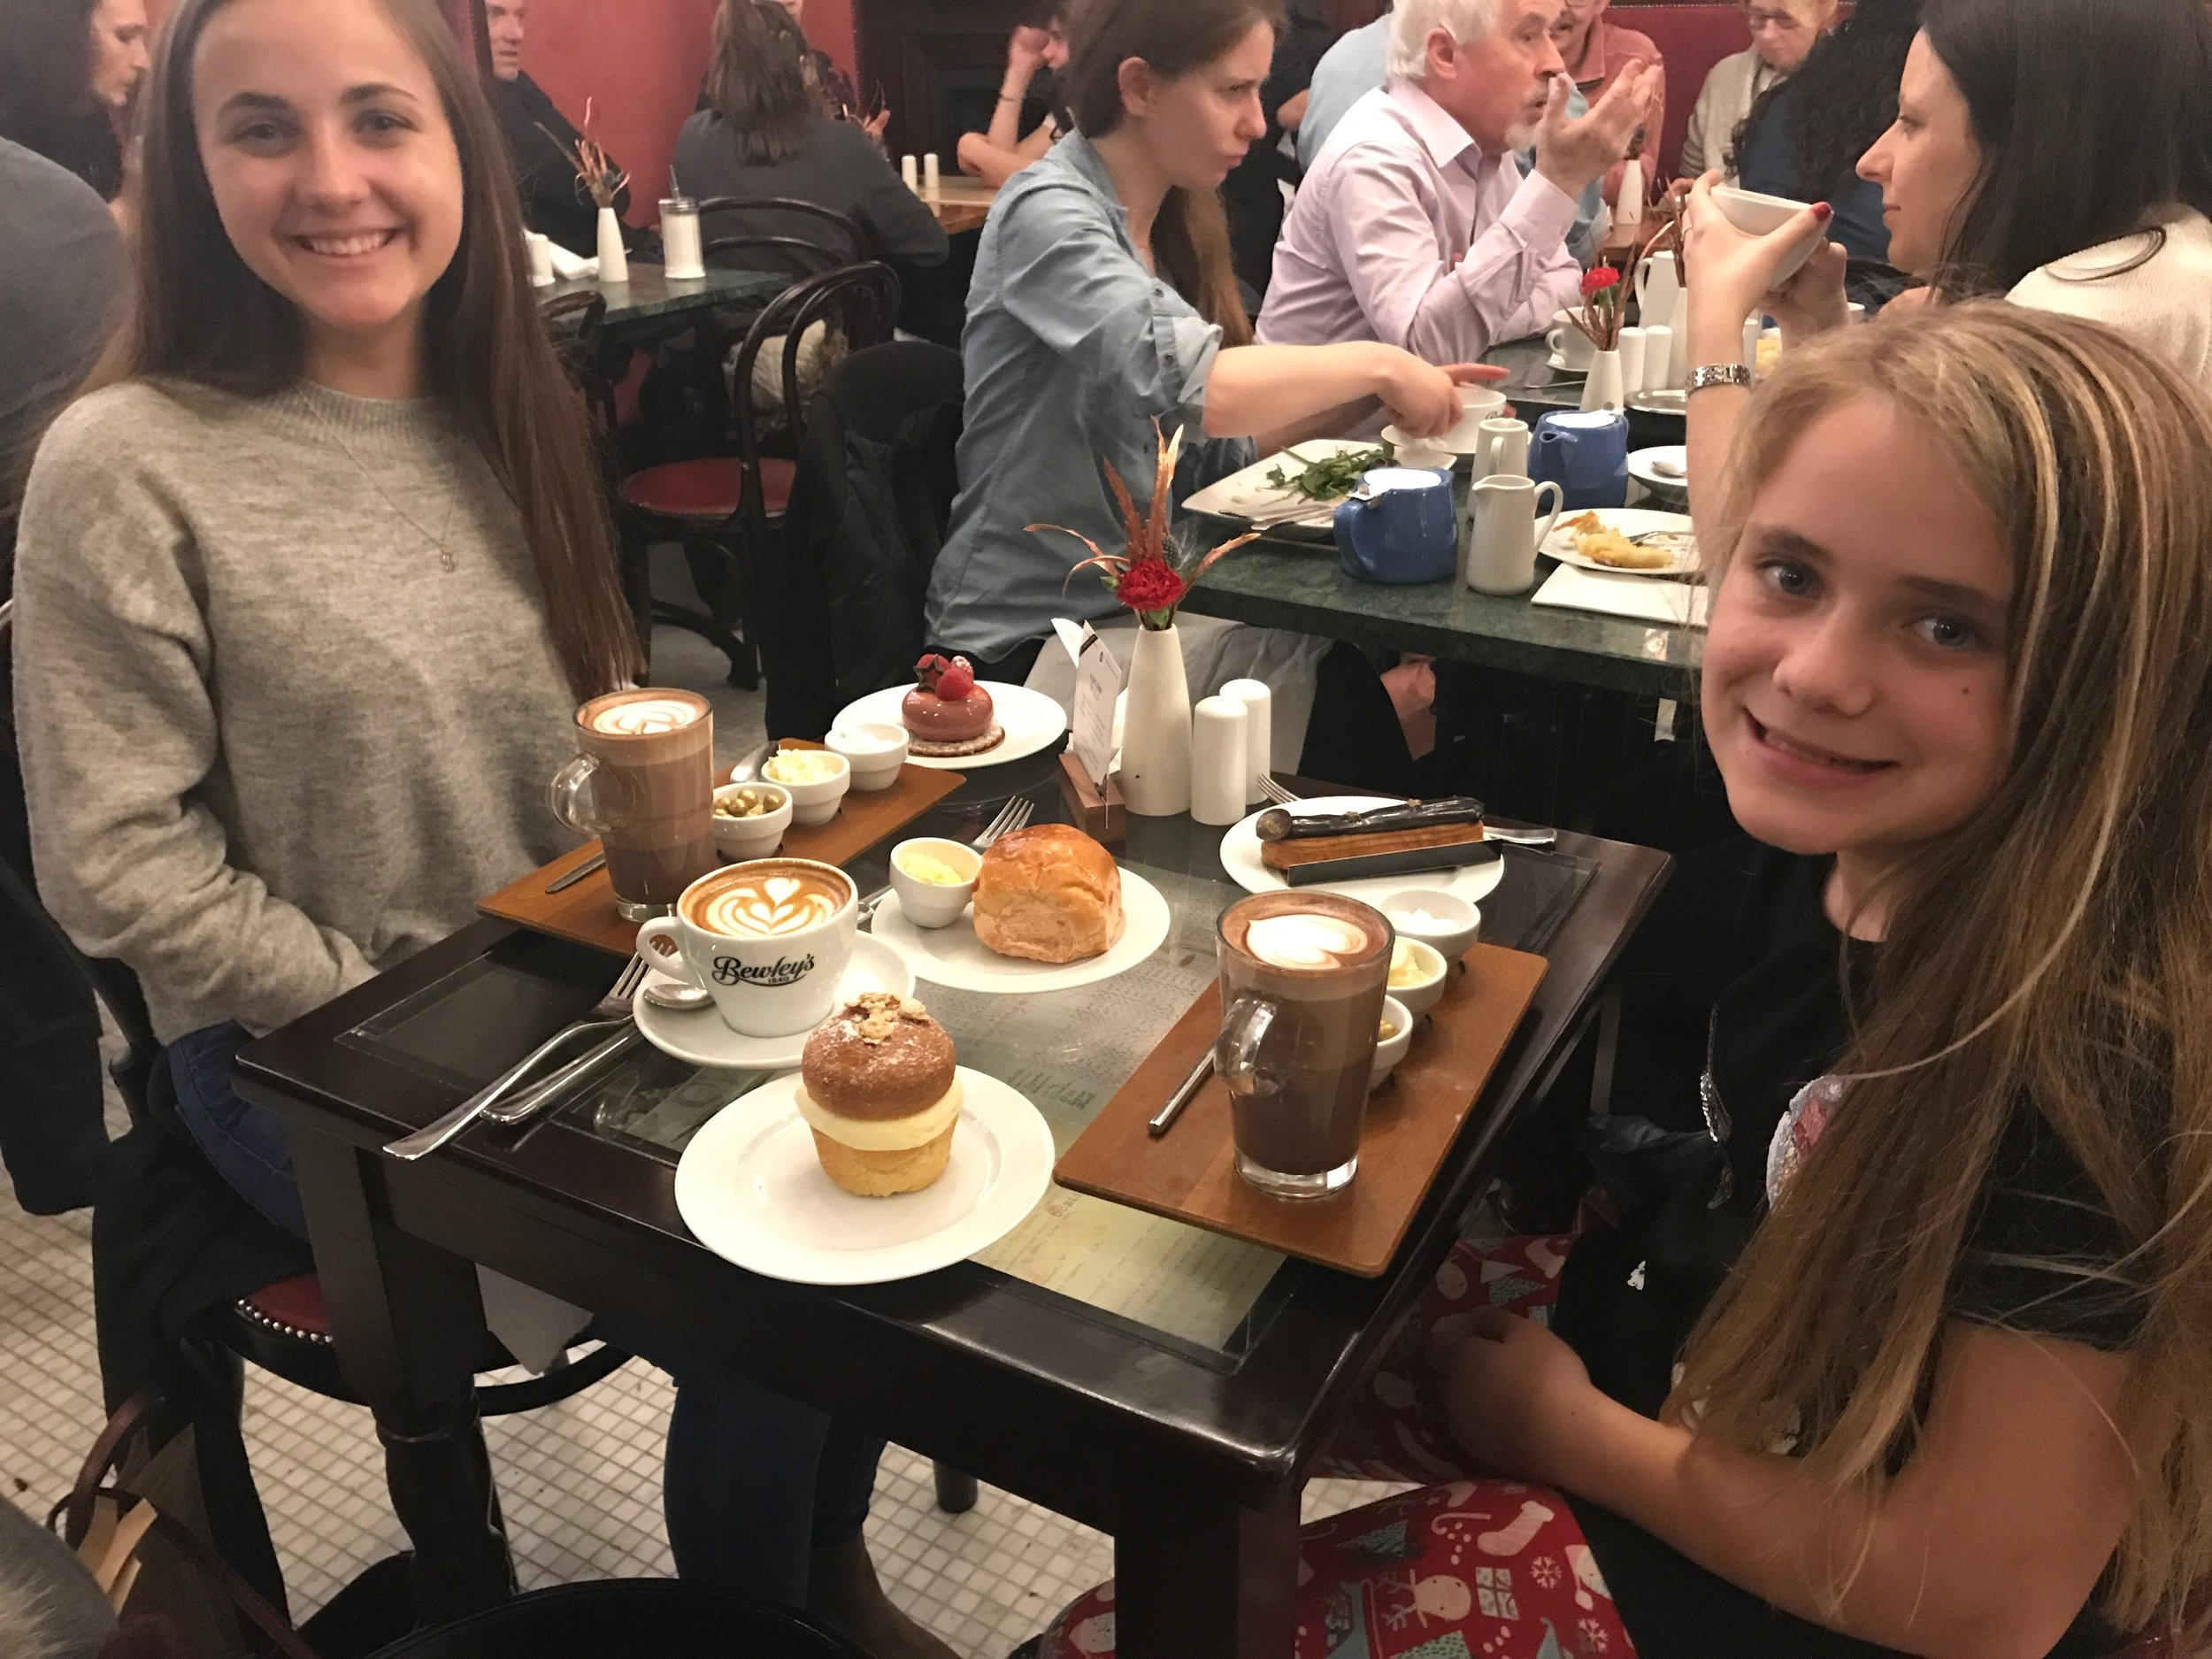 An extra special sweet treat with my ladies!